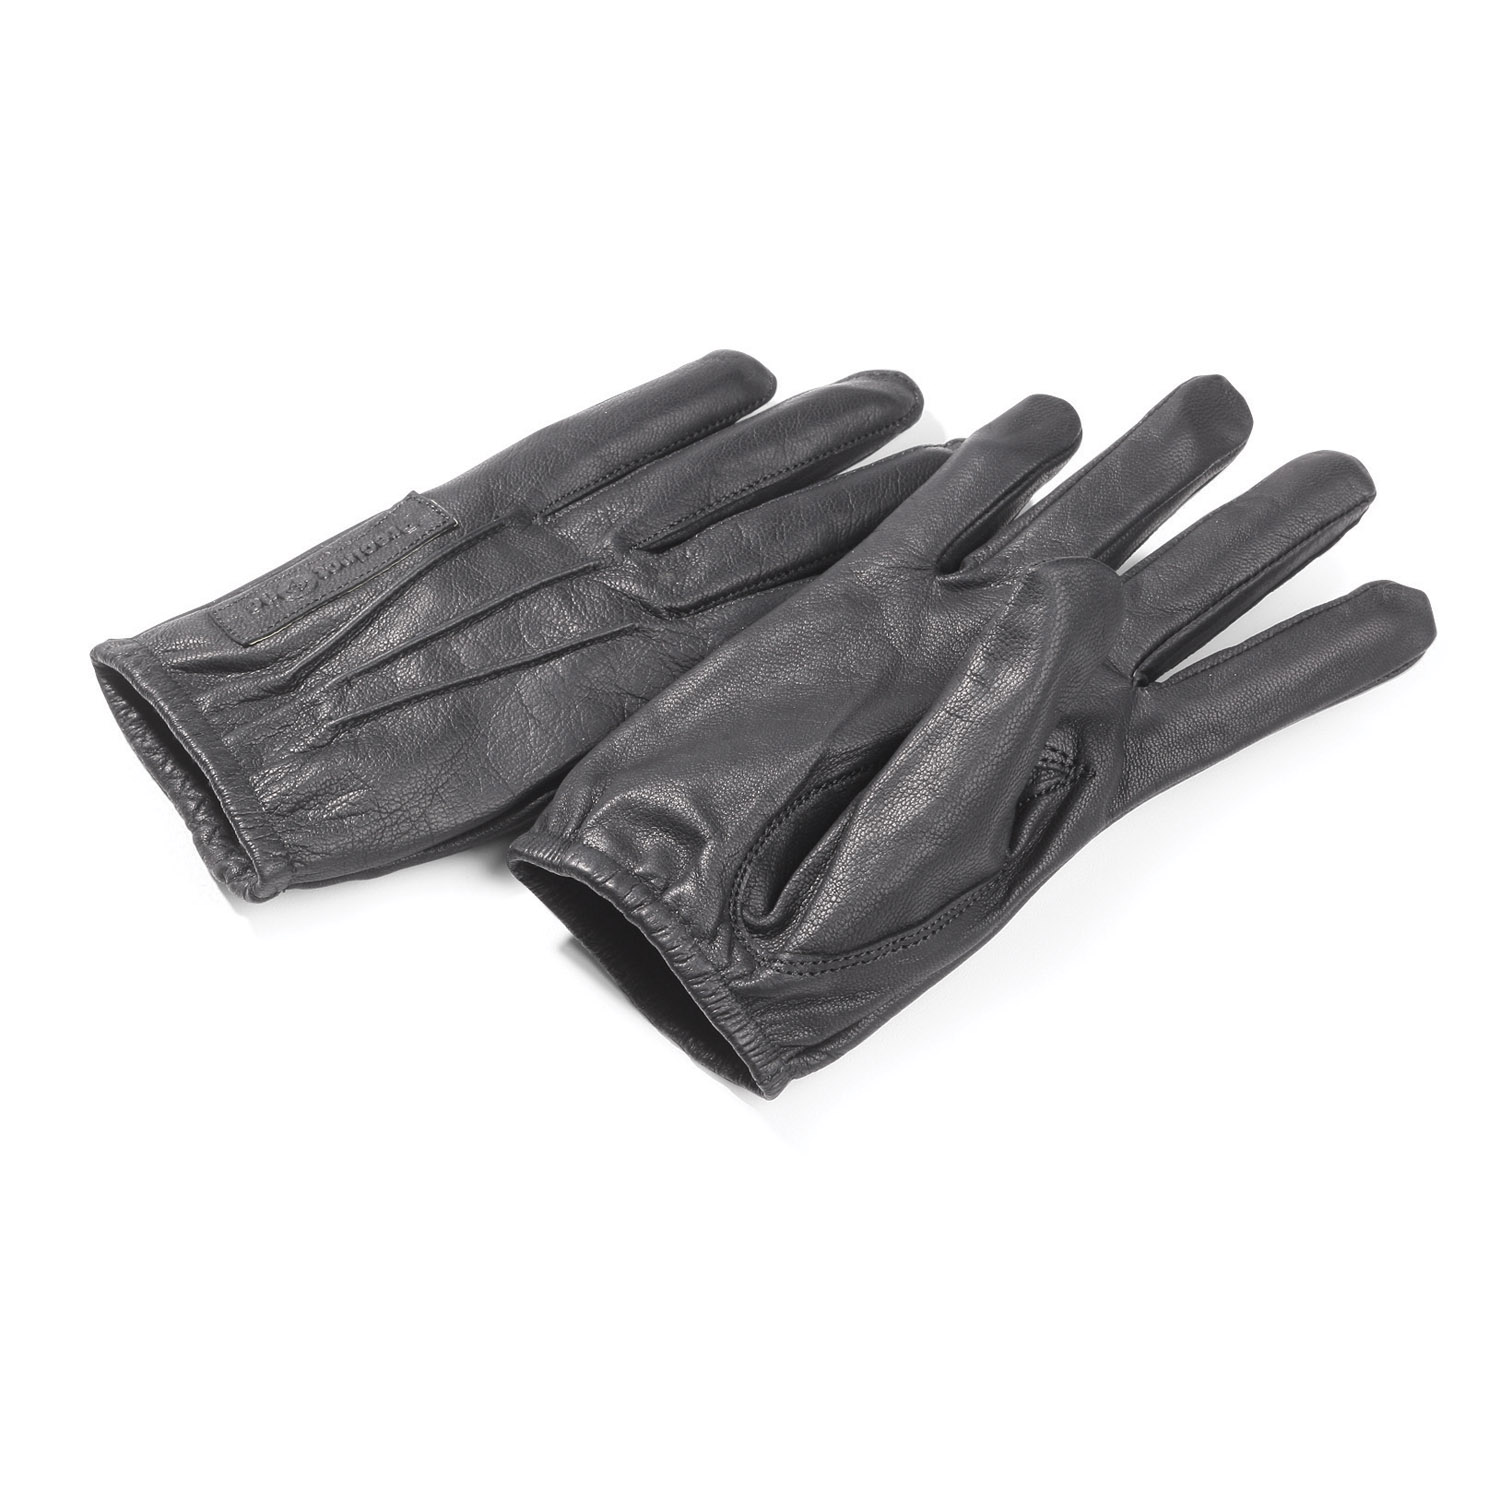 Precinct One Women's Waterproof Classic Leather Duty Gloves